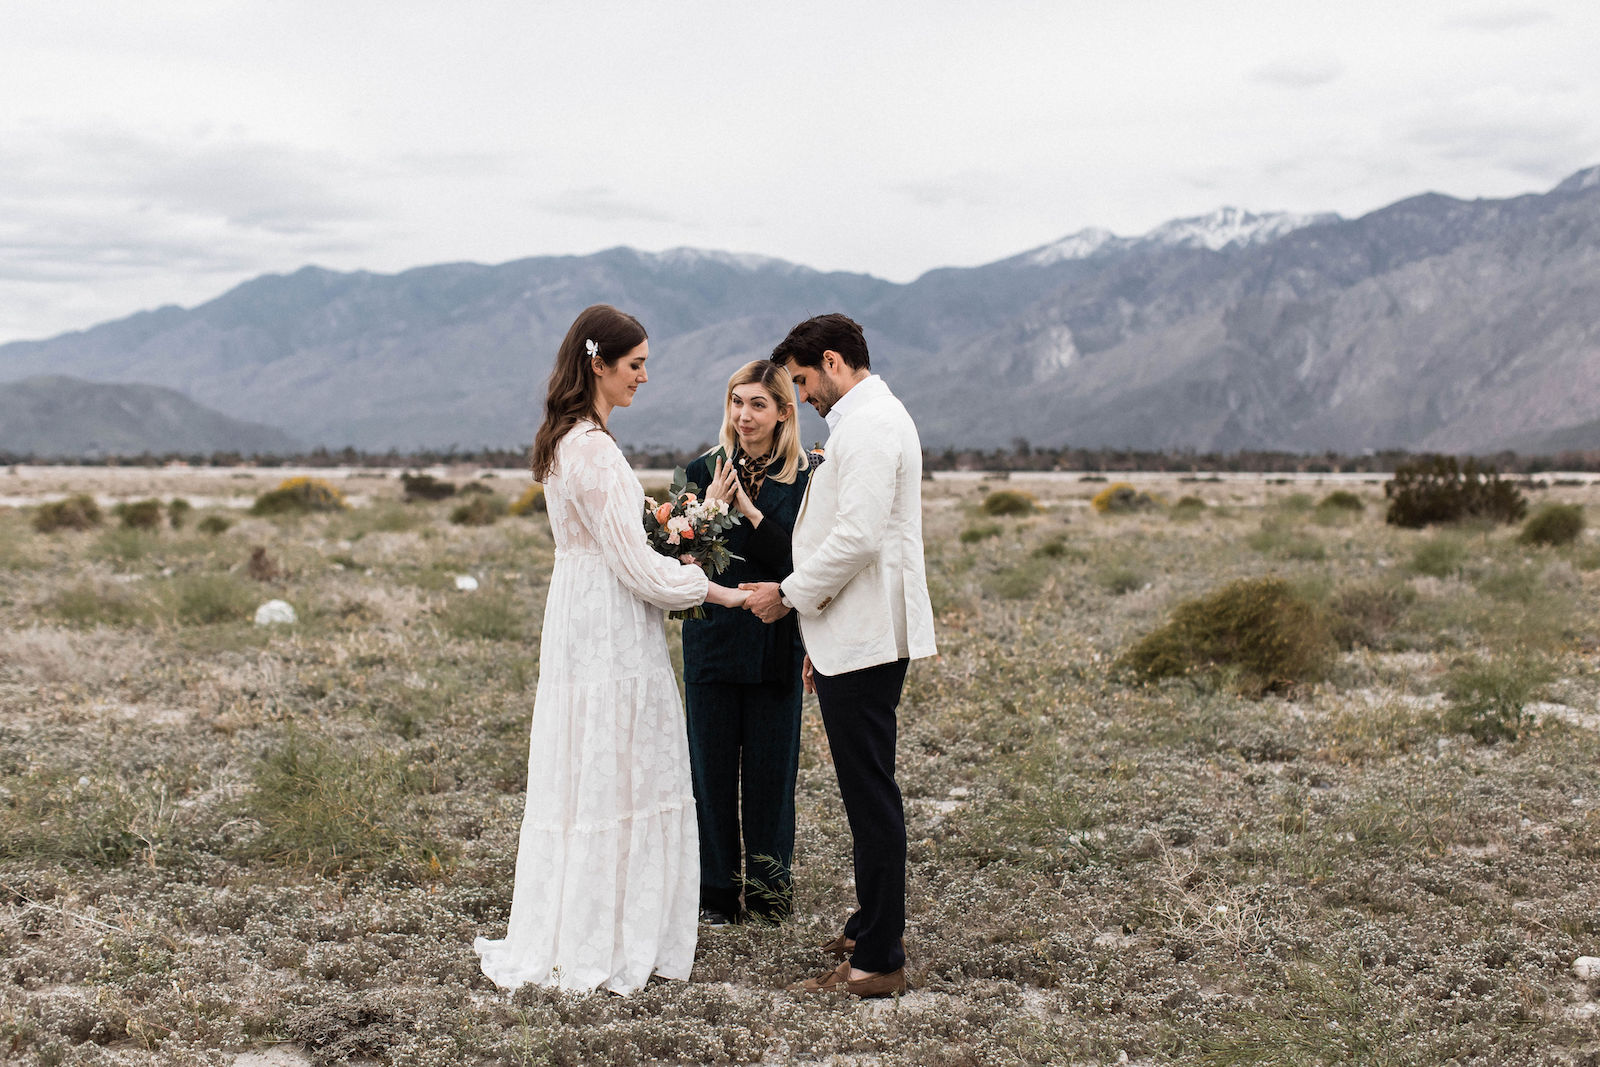 palm springs pop up wedding00016.jpg